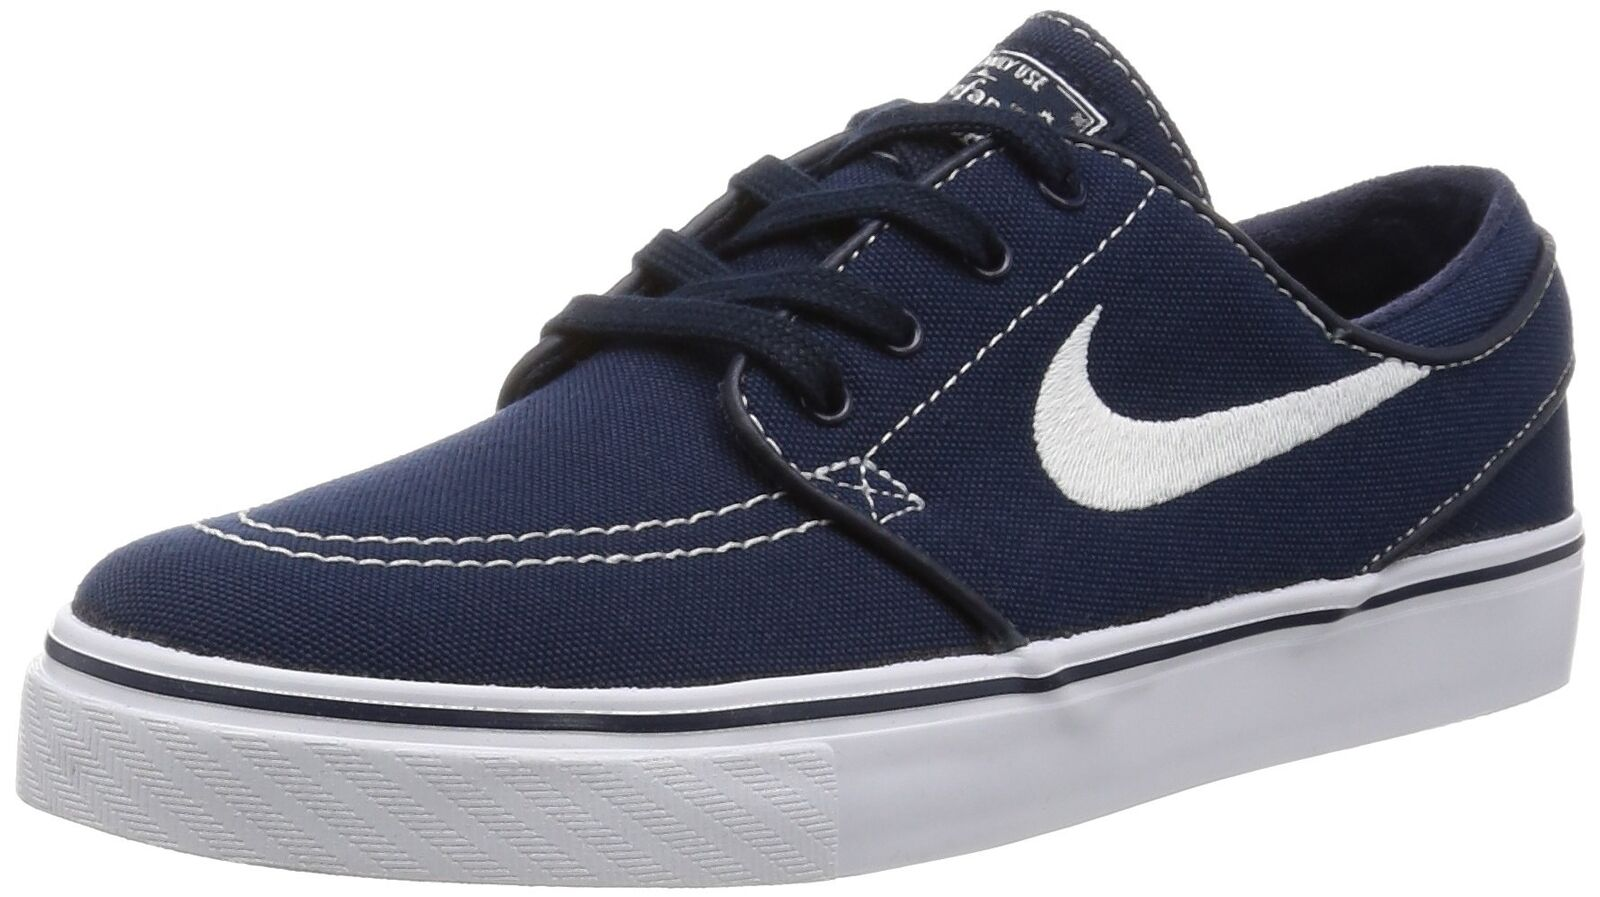 NIKE Men's Zoom Stefan Janoski Skate Shoe Obsidian/White-gum Light Brown 11.5